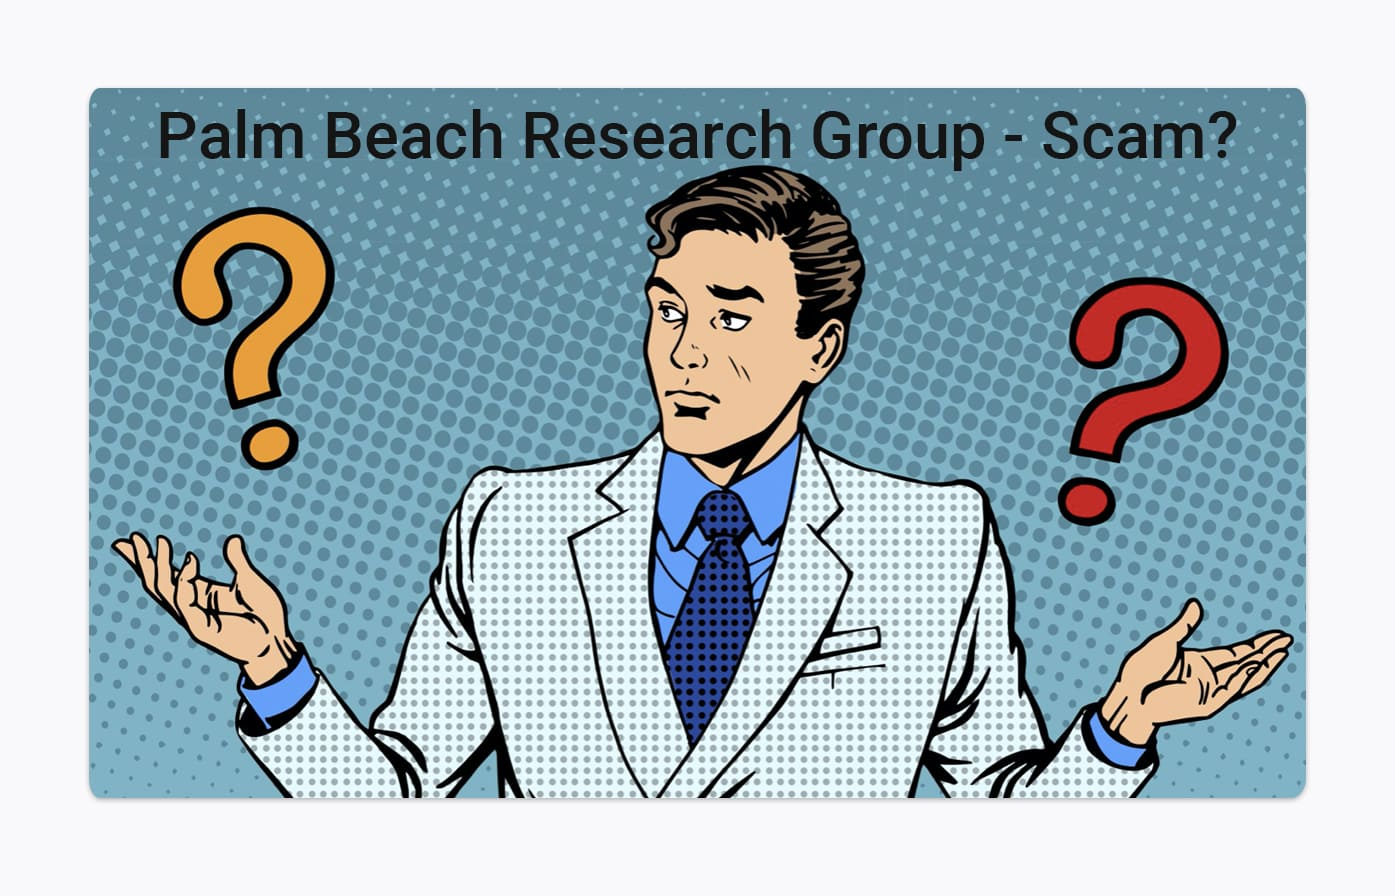 palm beach research group scam